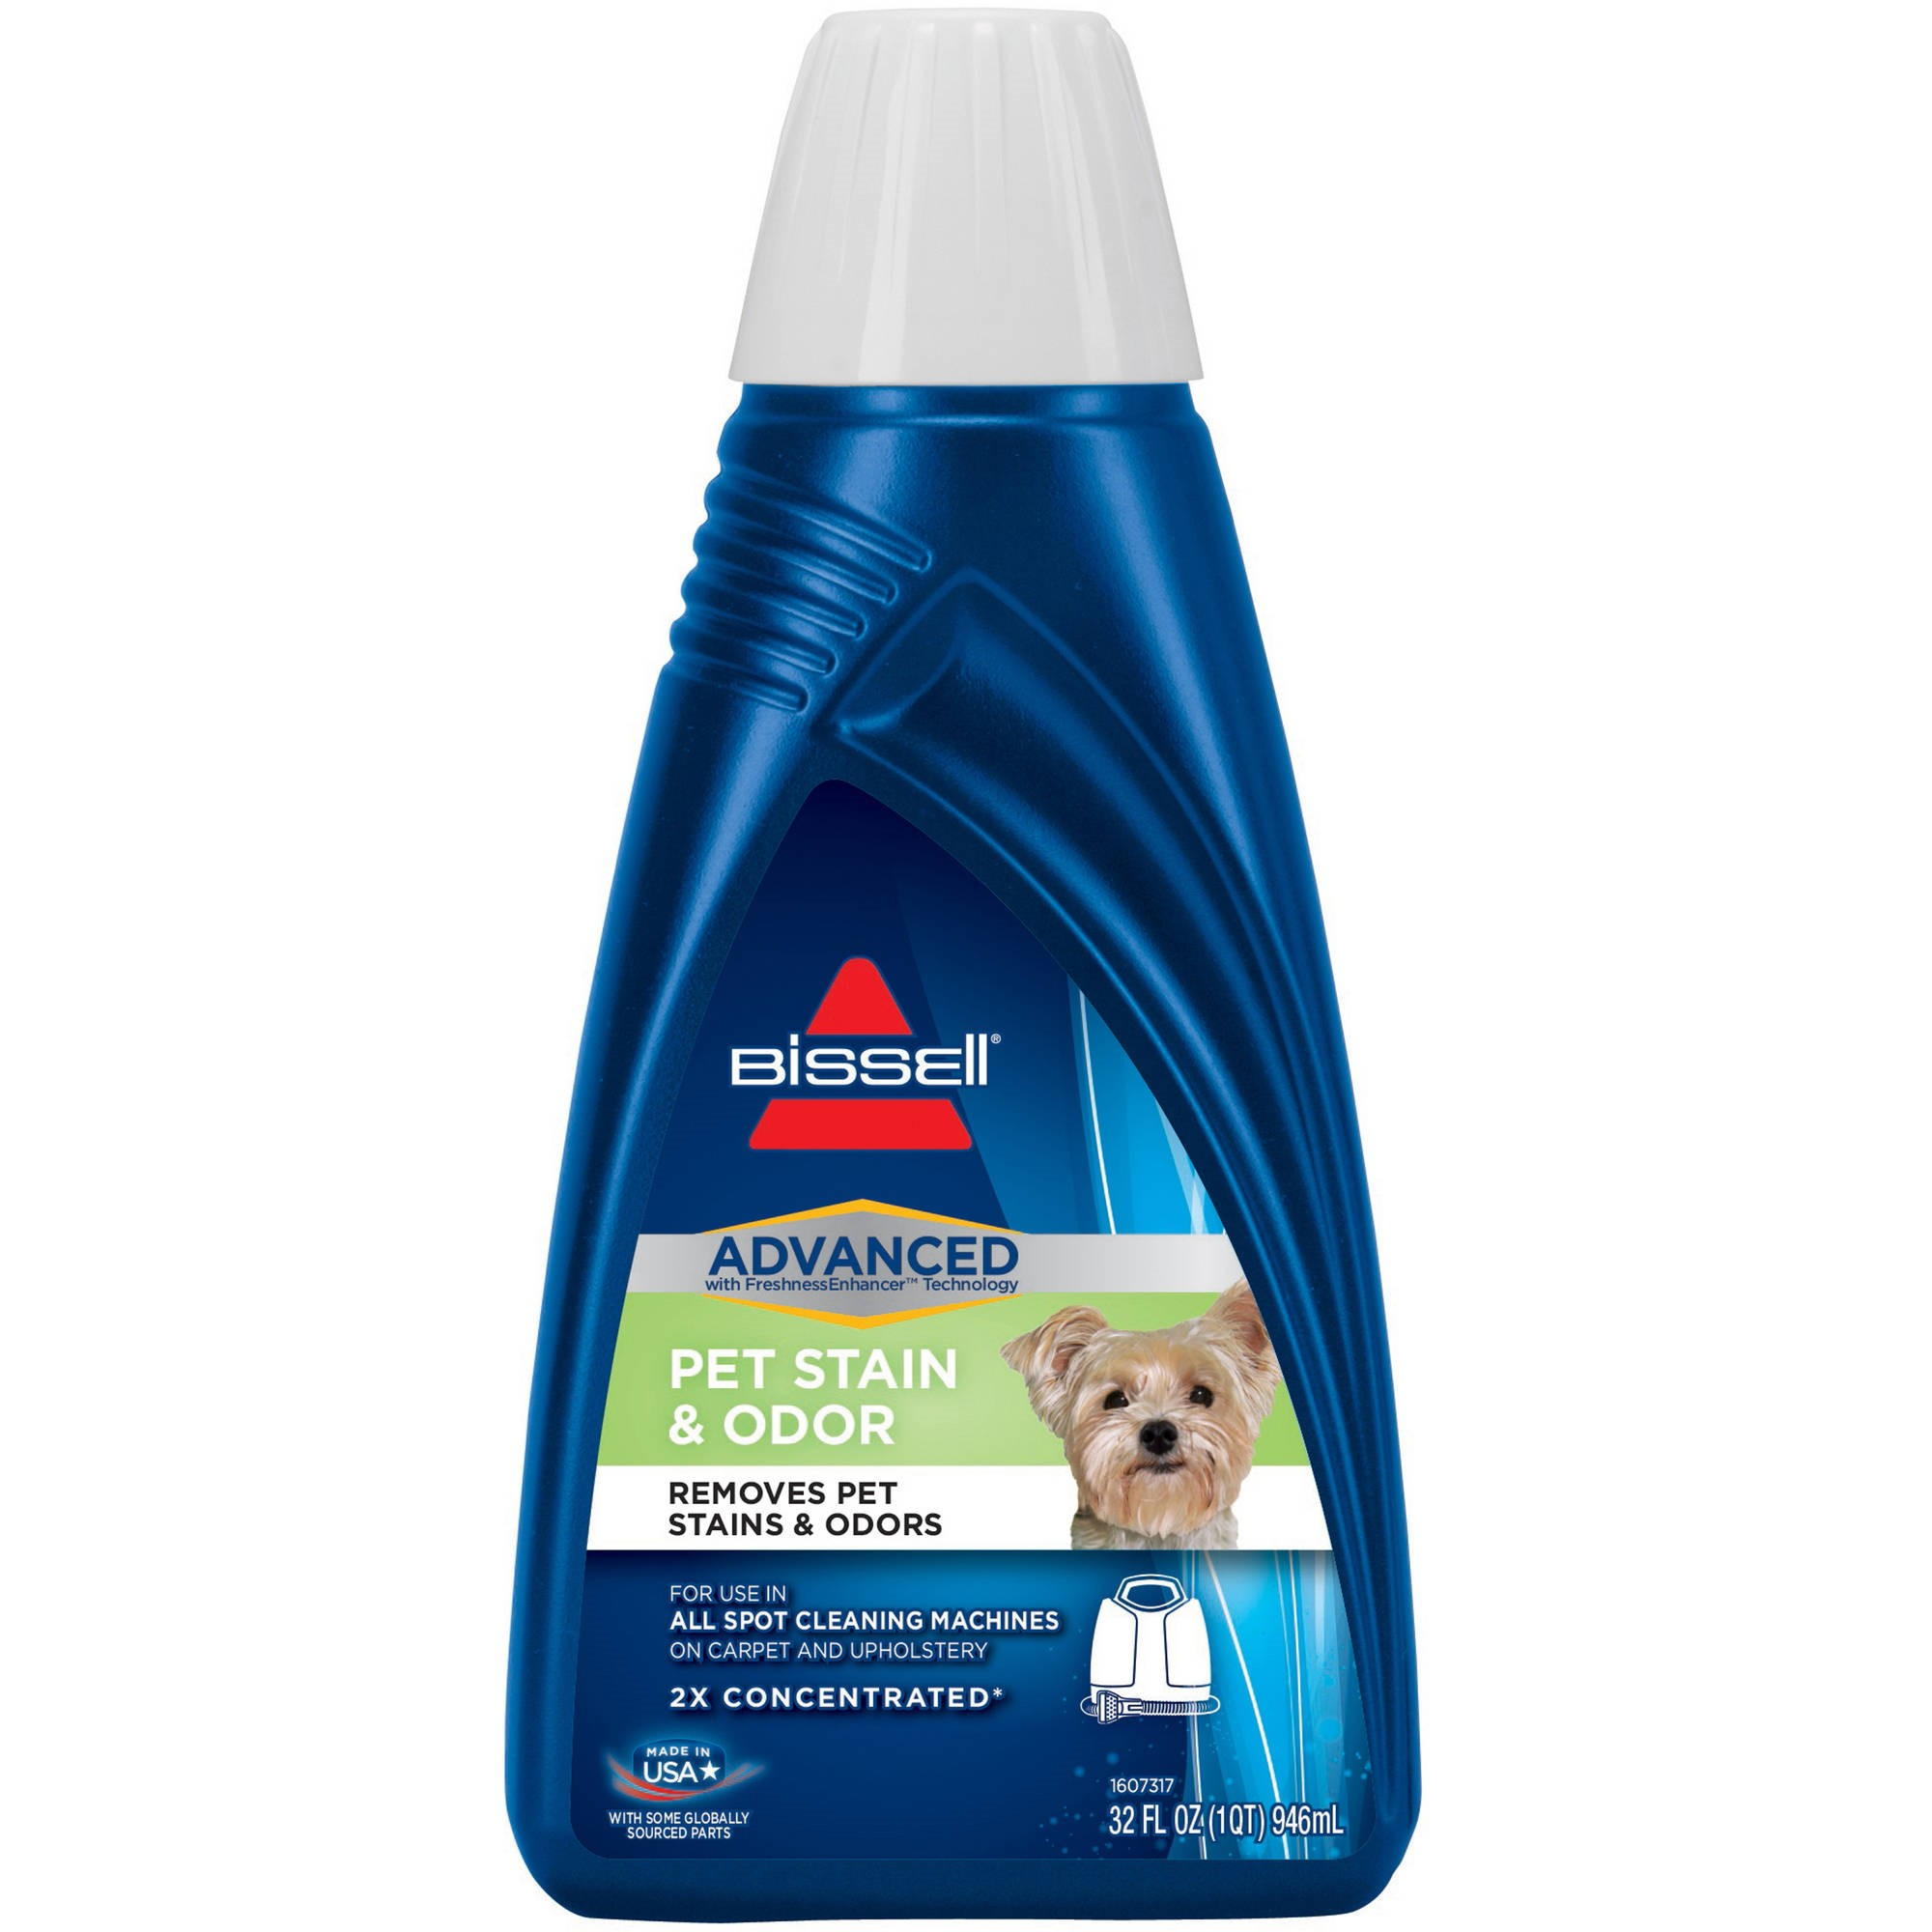 BISSELL 2X Pet Stain & Odor Carpet Cleaning Formula (32 oz.) | 74R7